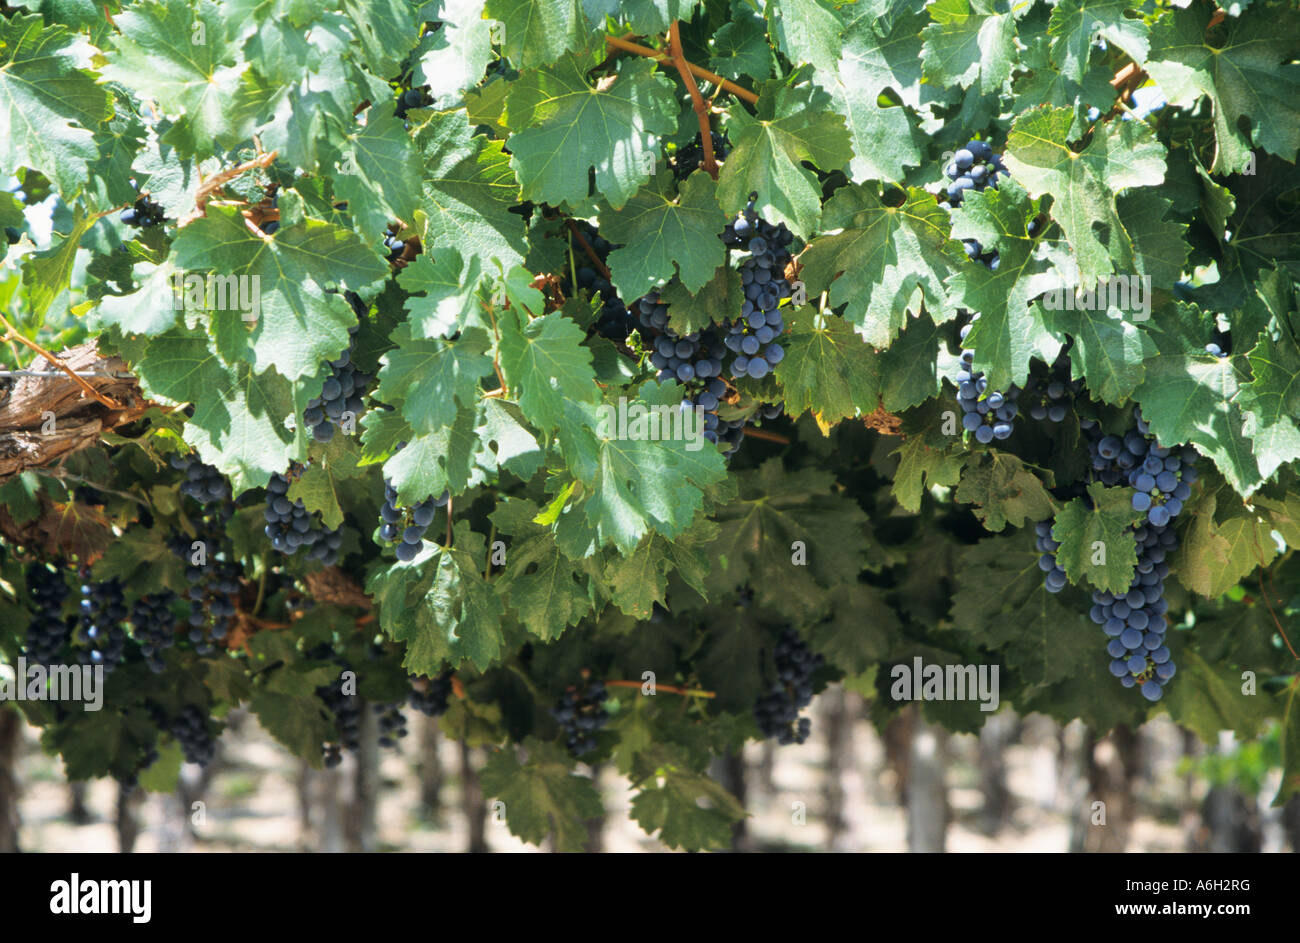 Grapes on vines - Stock Image